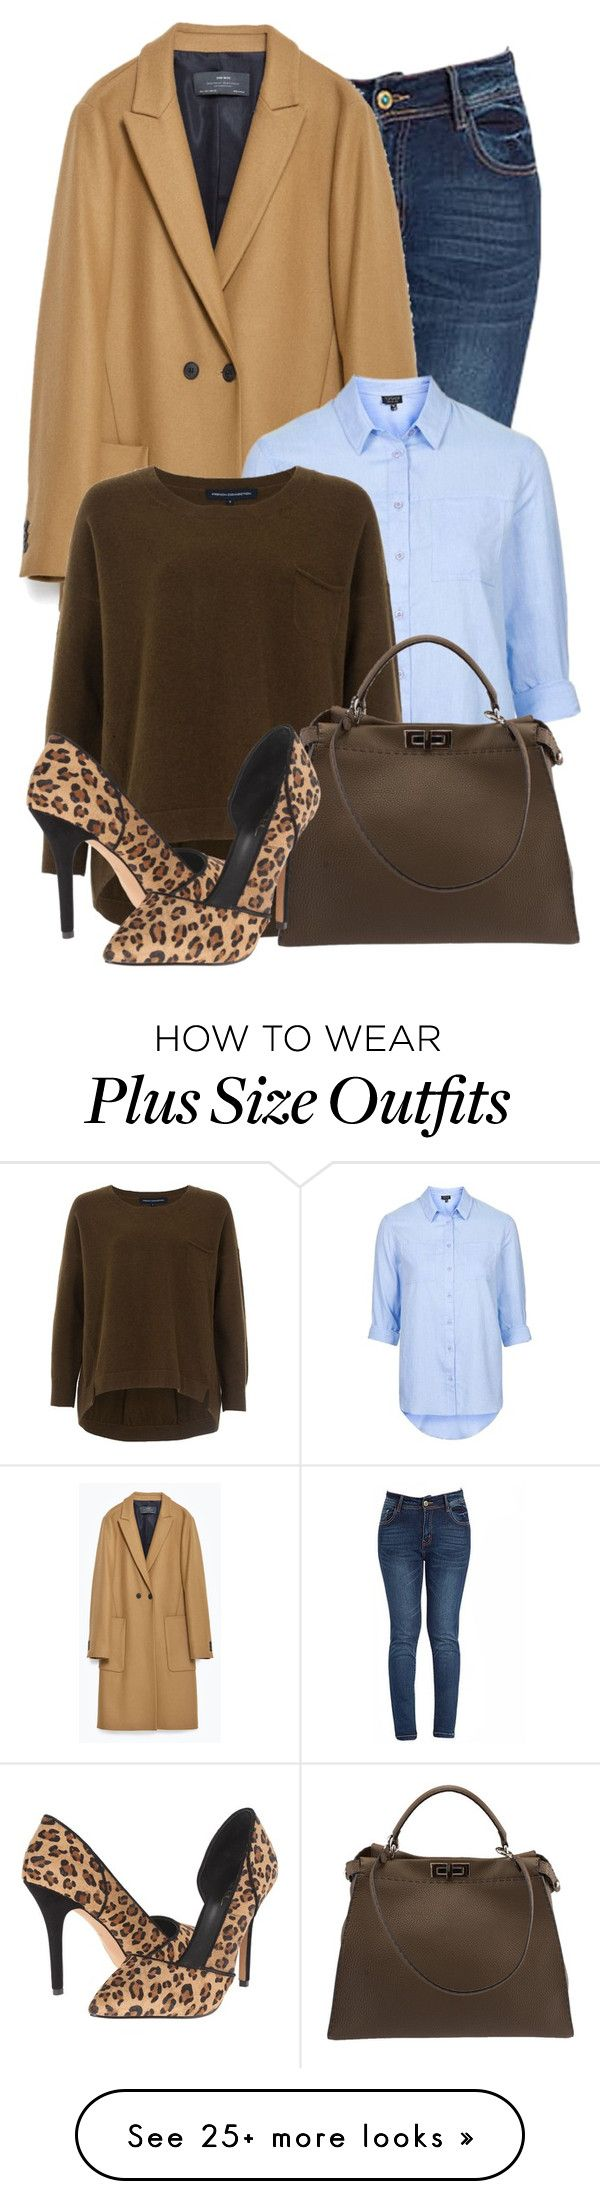 """Untitled #1122"" by mrs-rc on Polyvore featuring Zara, Topshop, French Connection, Fendi, Artelier by Nicole Miller, women's clothing, women's fashion, women, female and woman"